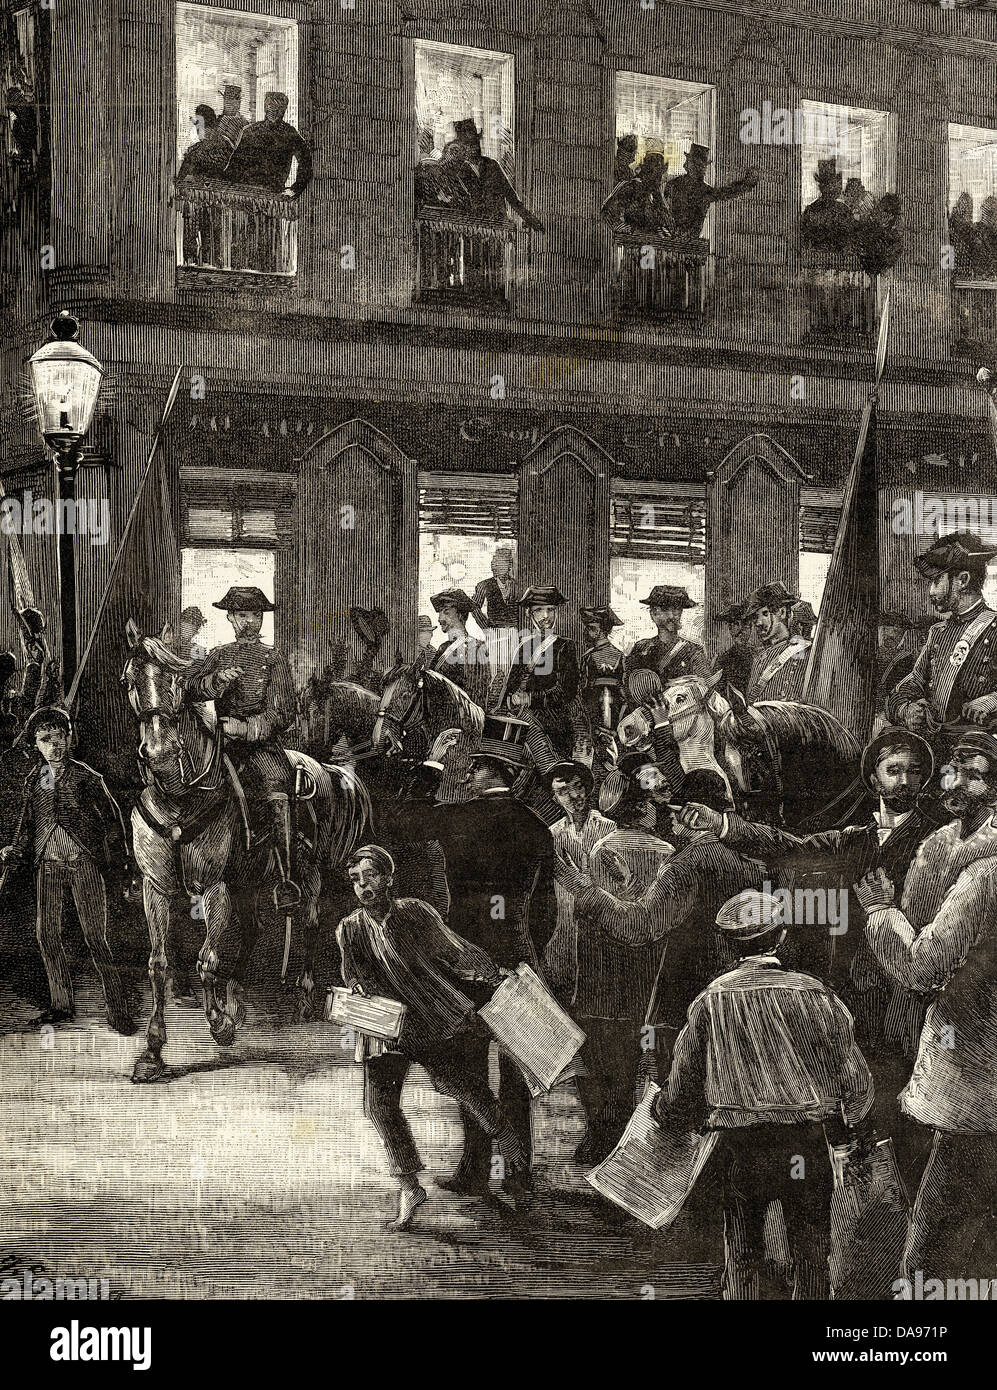 Spain. Conflict of the Caroline Islands. Patriotic protest in Seville Street, Madrid. Engraving. 1885. - Stock Image